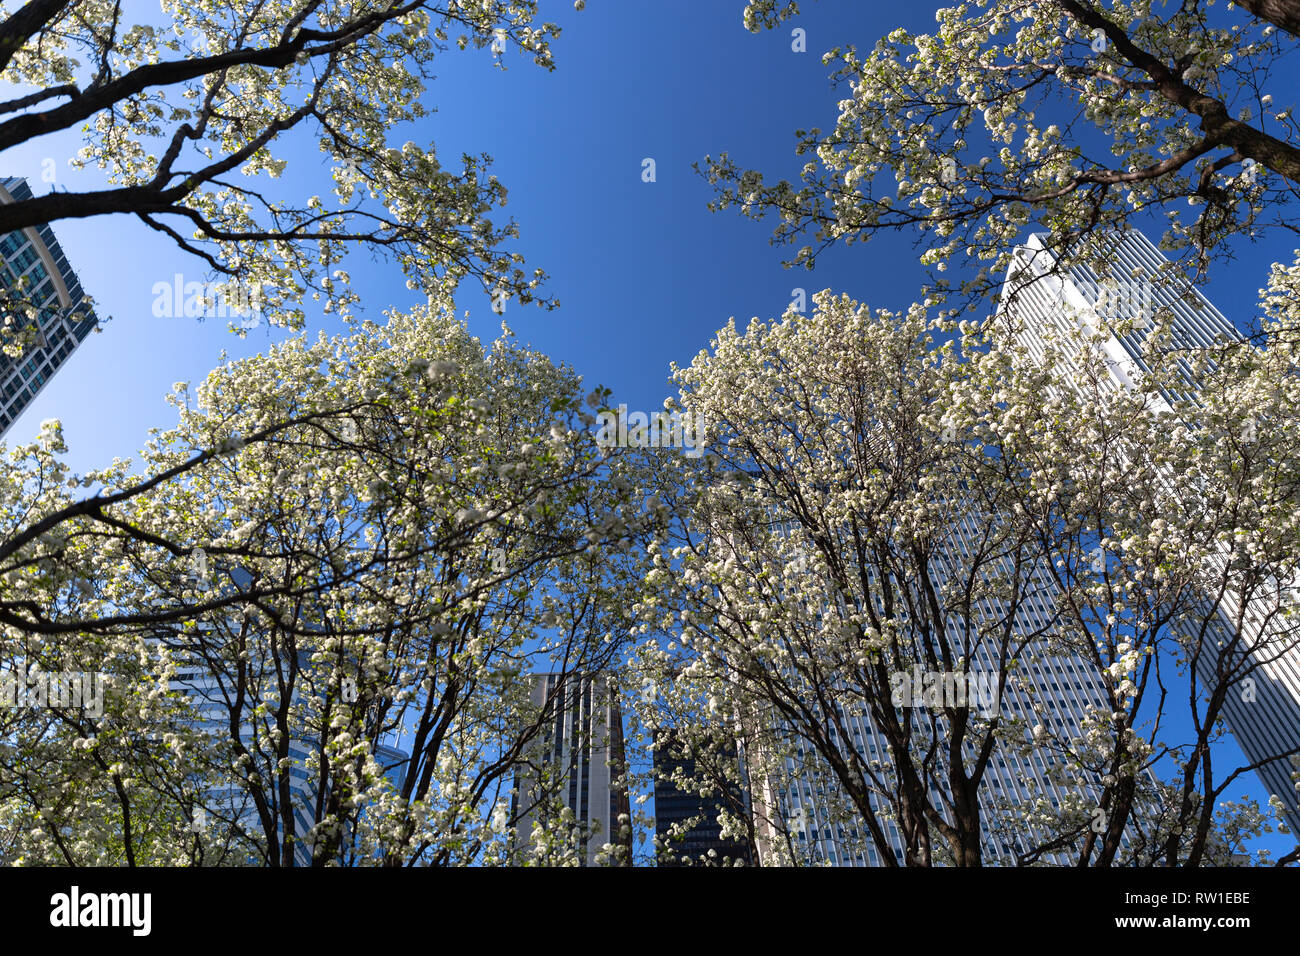 Trees flowering in Millennium Park in the beginning of spring in Chicago with blue sky and buildings in background - Stock Image